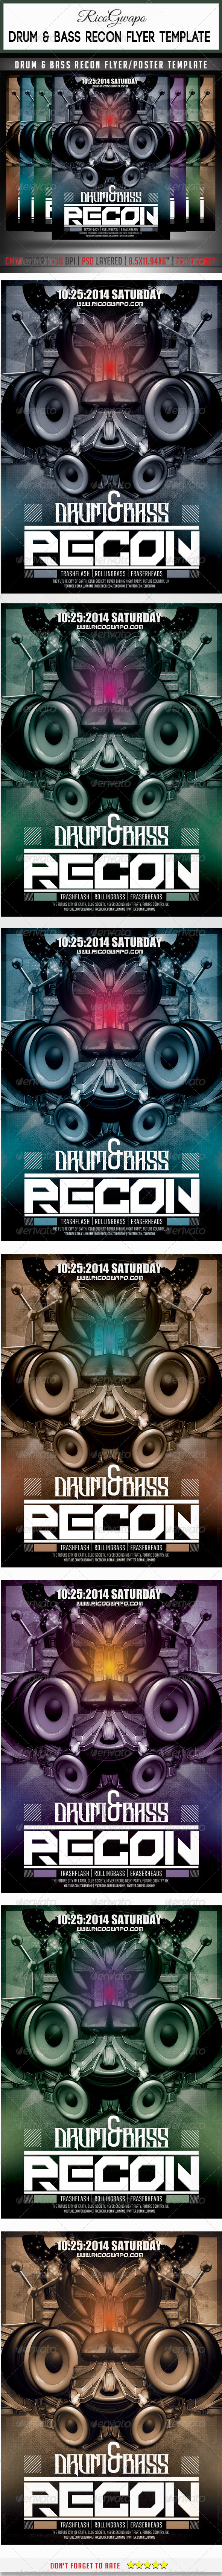 GraphicRiver Drum & Bass Recon Flyer Poster Template 8036839